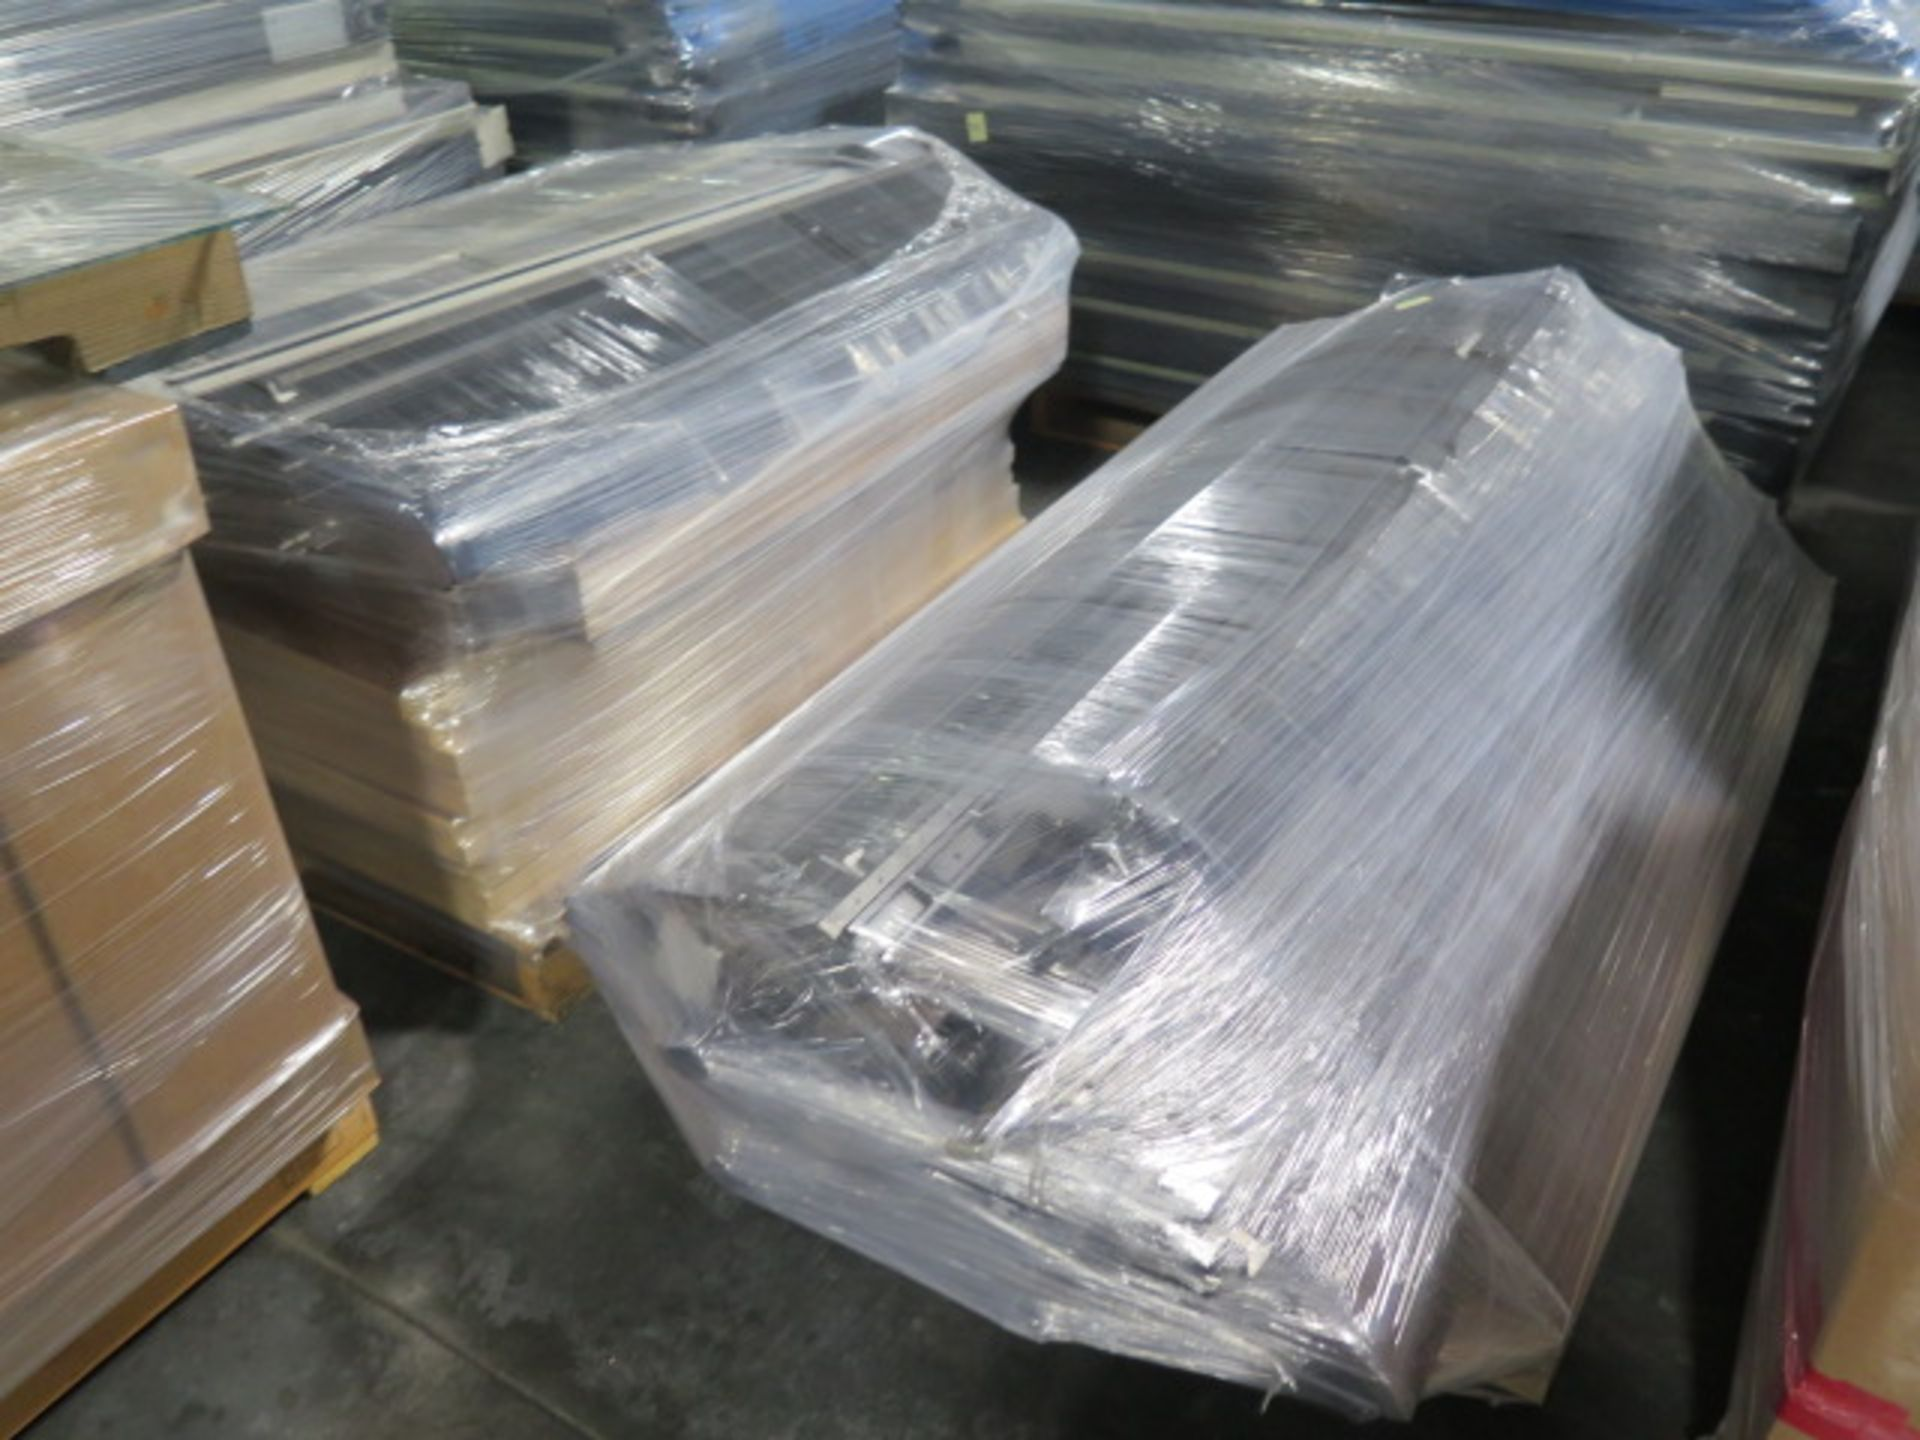 Large Quantity of Office Partitions, Desks, File Cabinets and Storage Cabinets (SOLD AS-IS - NO WARA - Image 16 of 24